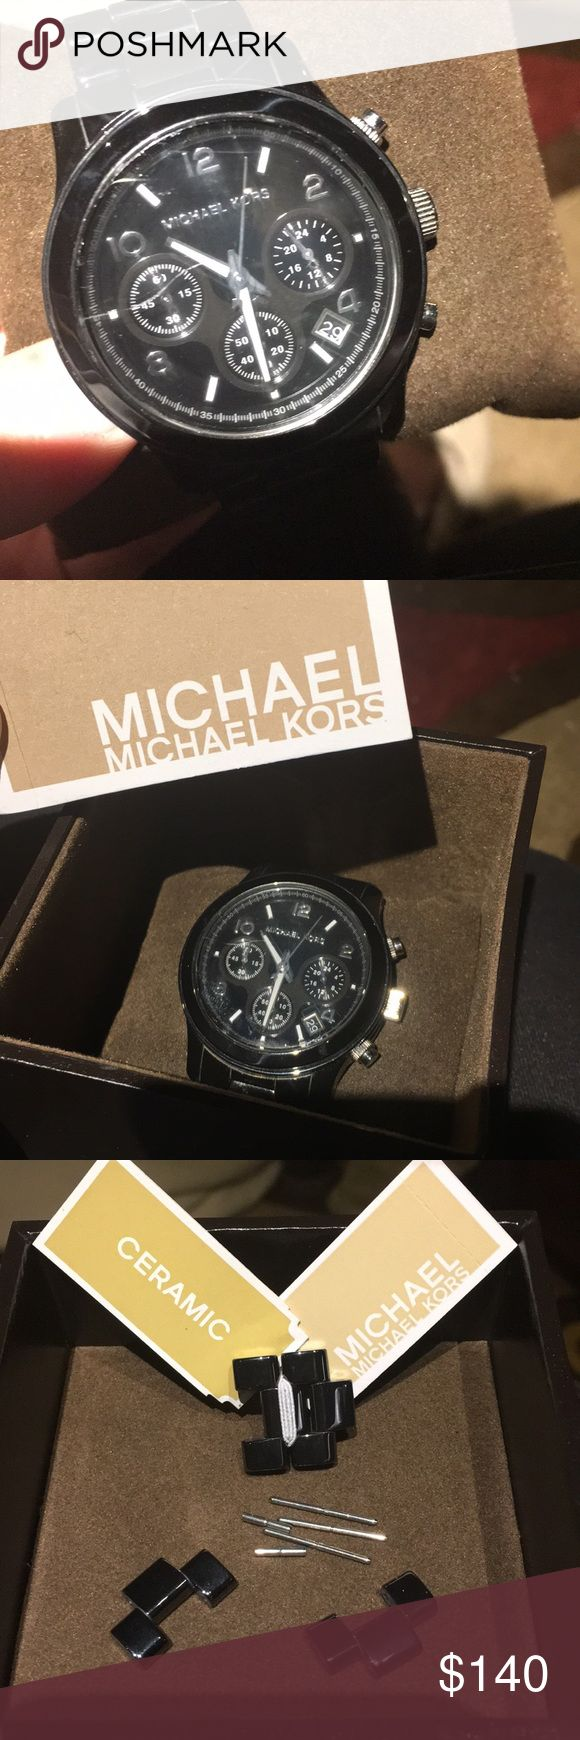 Michael Kors Watch Black Michael Kors watch. Does have scratch on face.  Extra links and screws included. Original box and pillow included, as well as instructions book. Michael Kors Jewelry